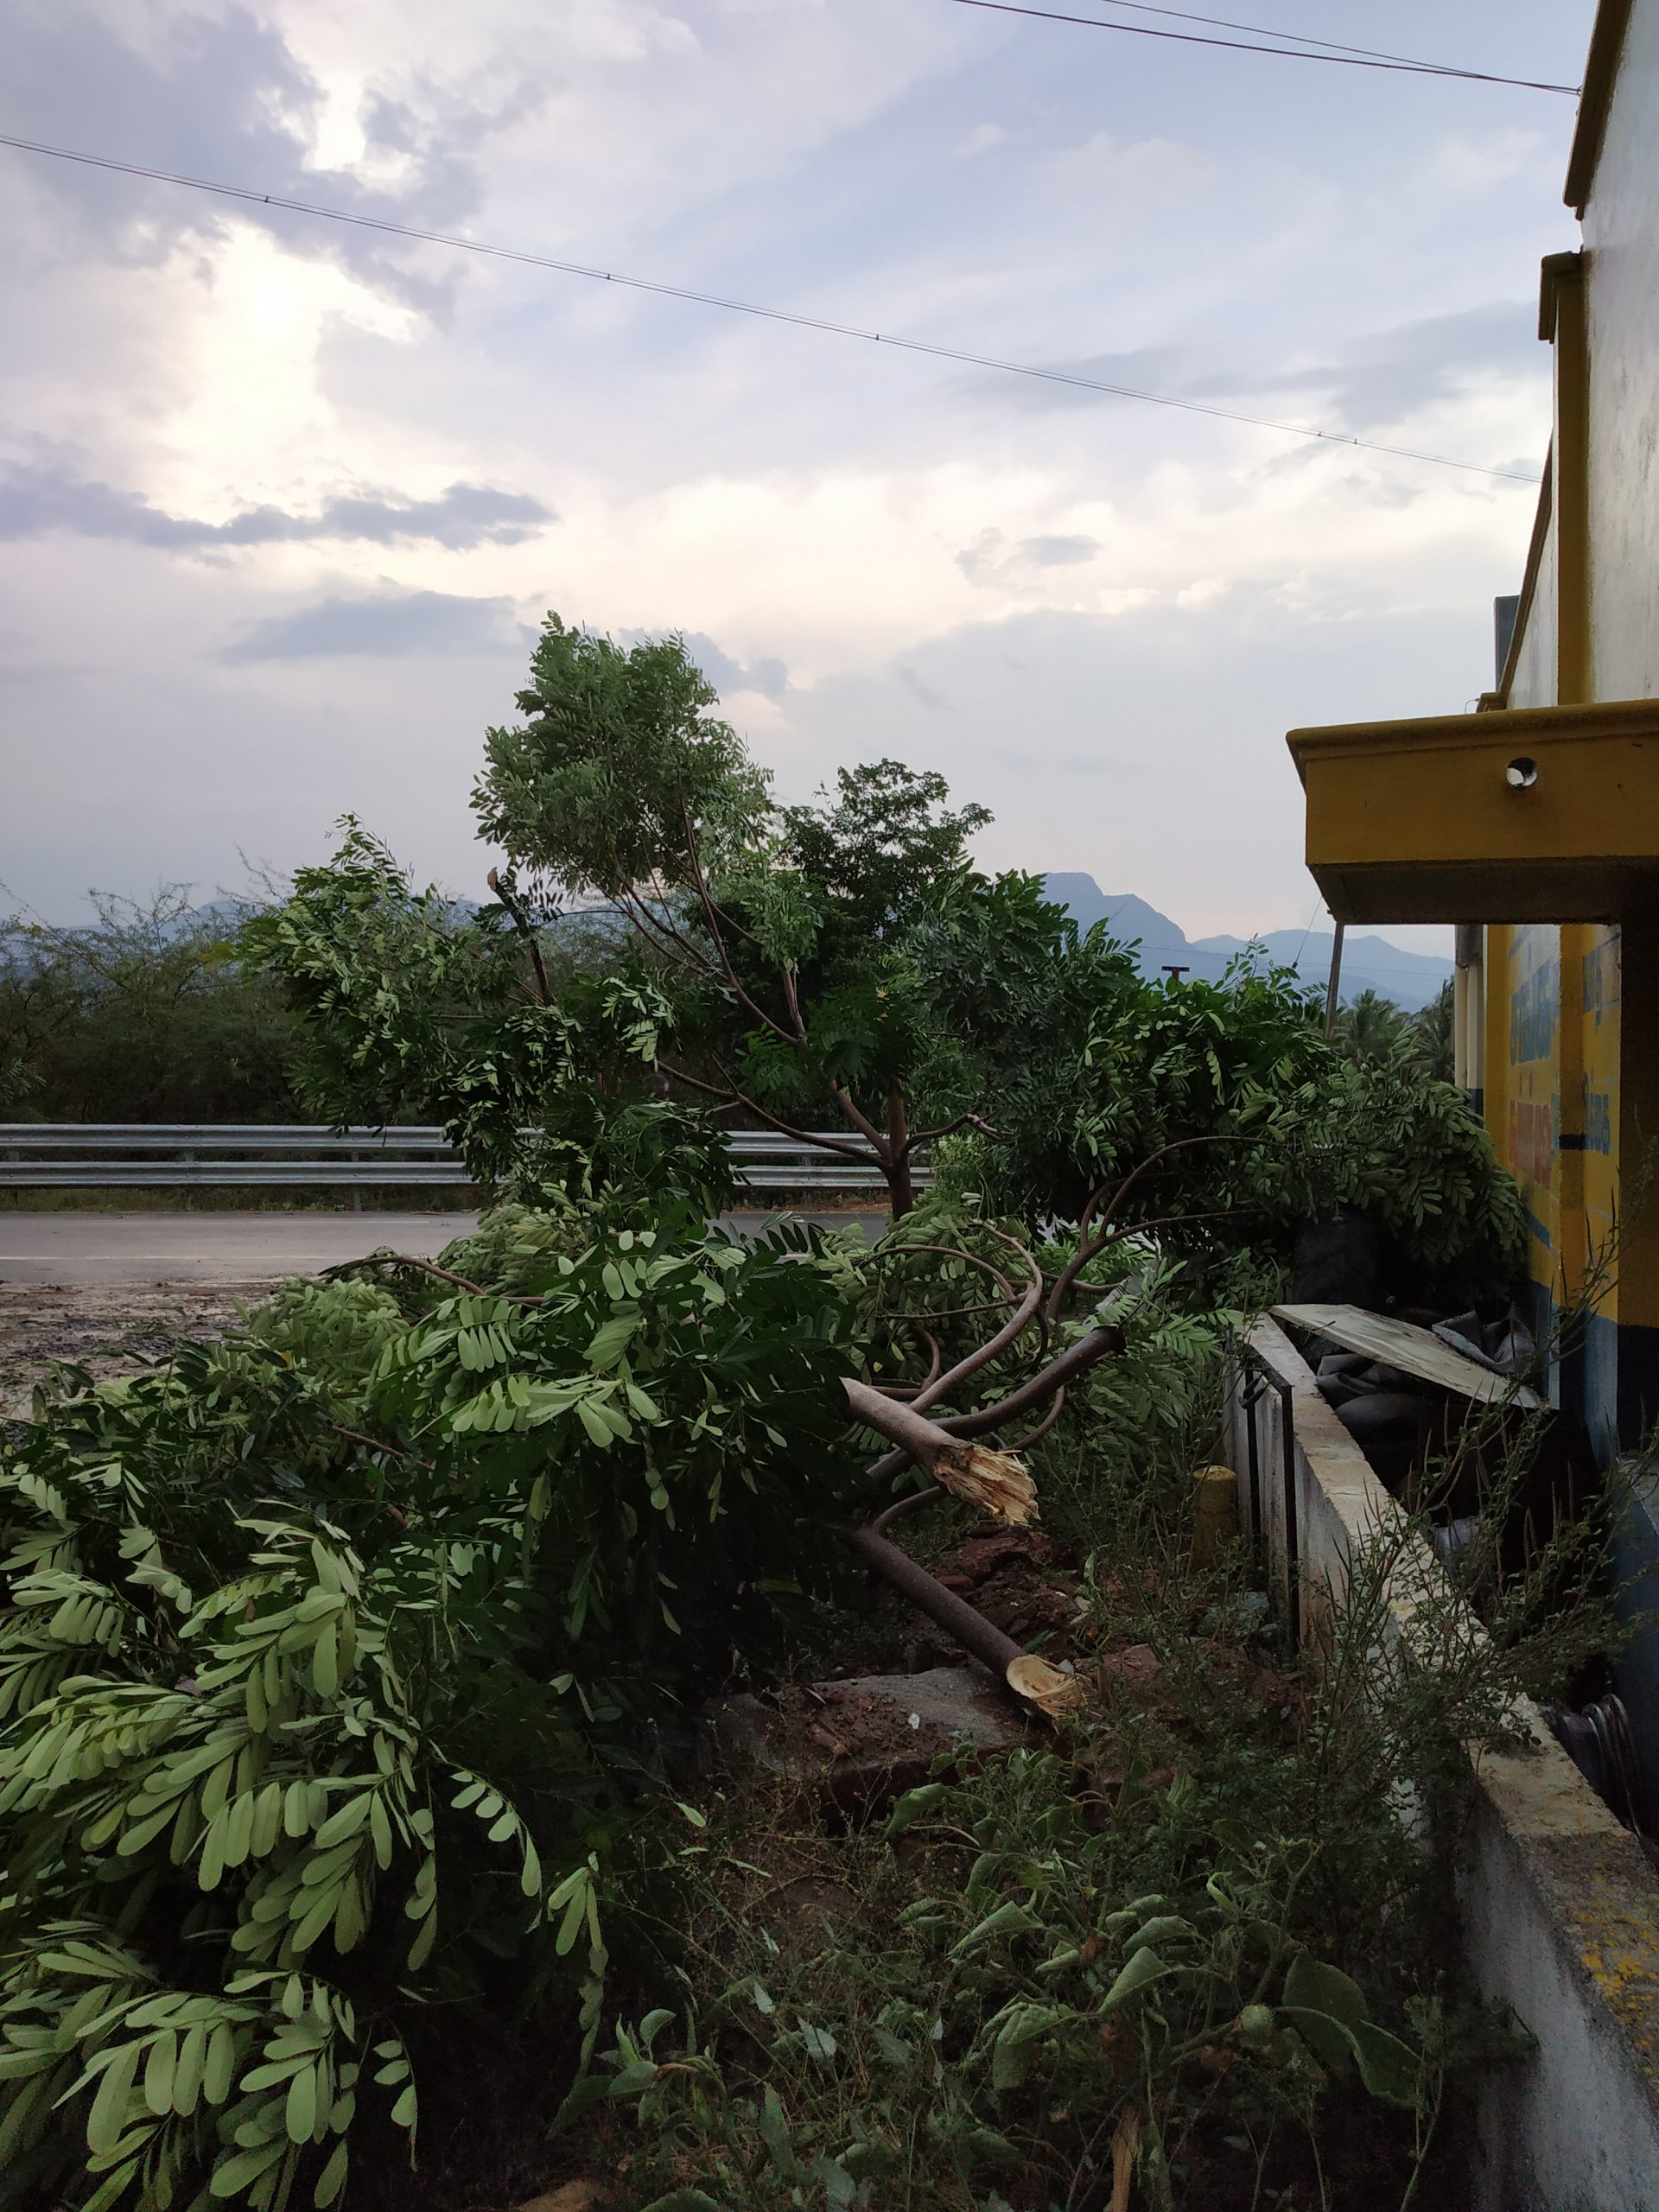 Trees uprooted due to storm